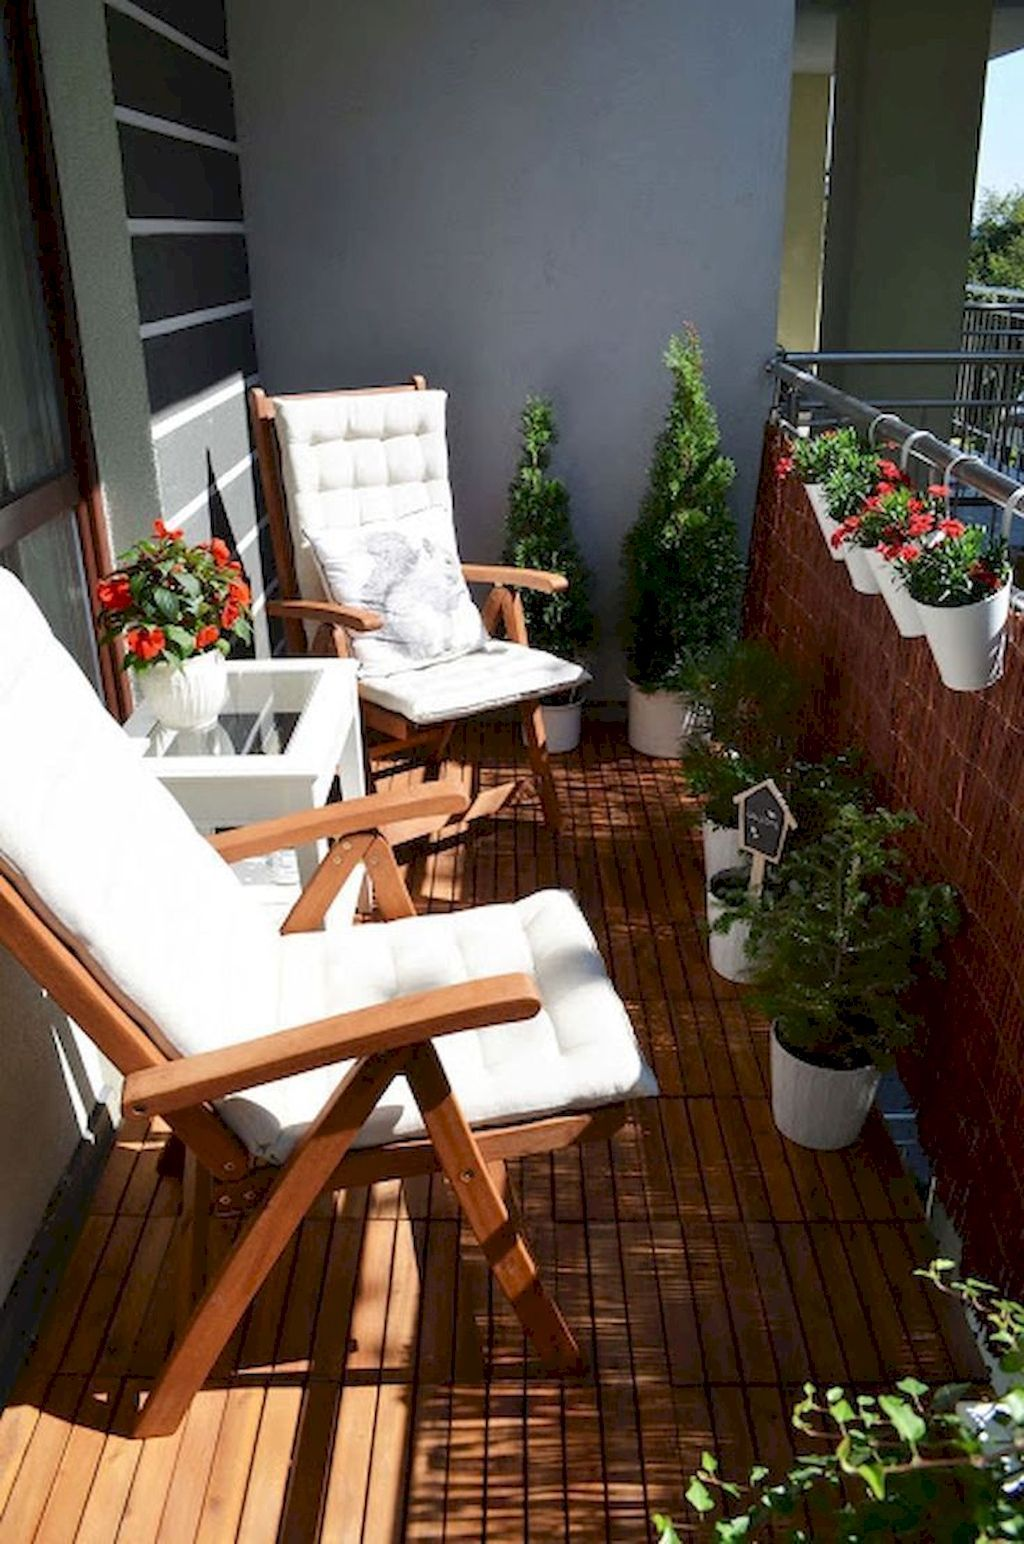 Awesome 80 Cozy Apartment Balcony Decorating Ideas On A Budget Https Quitdecor